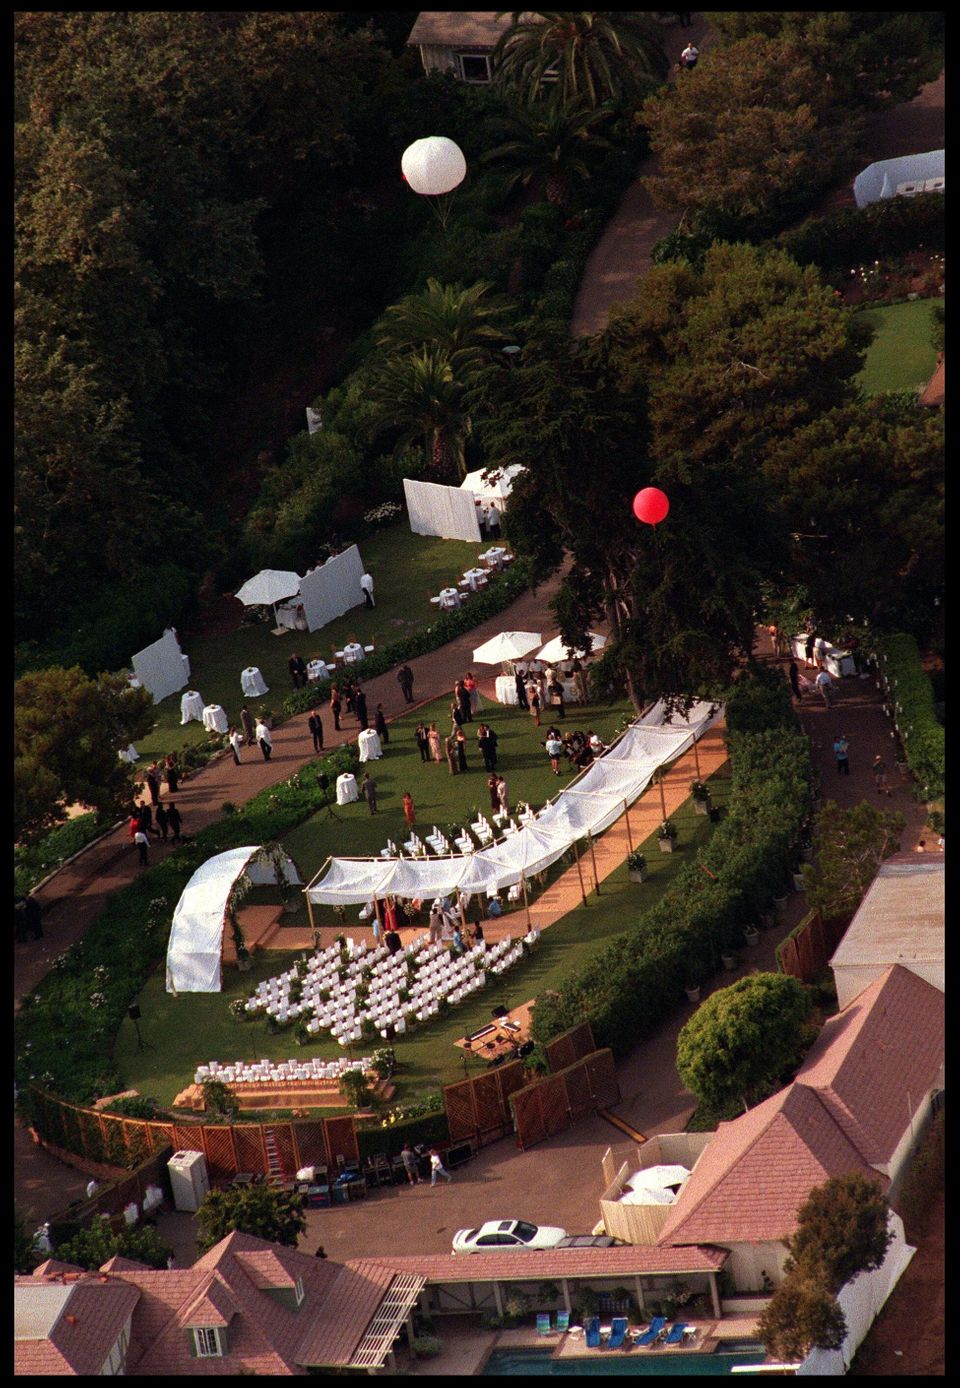 An aerial view of Brad Pitt and Jennifer Aniston's wedding